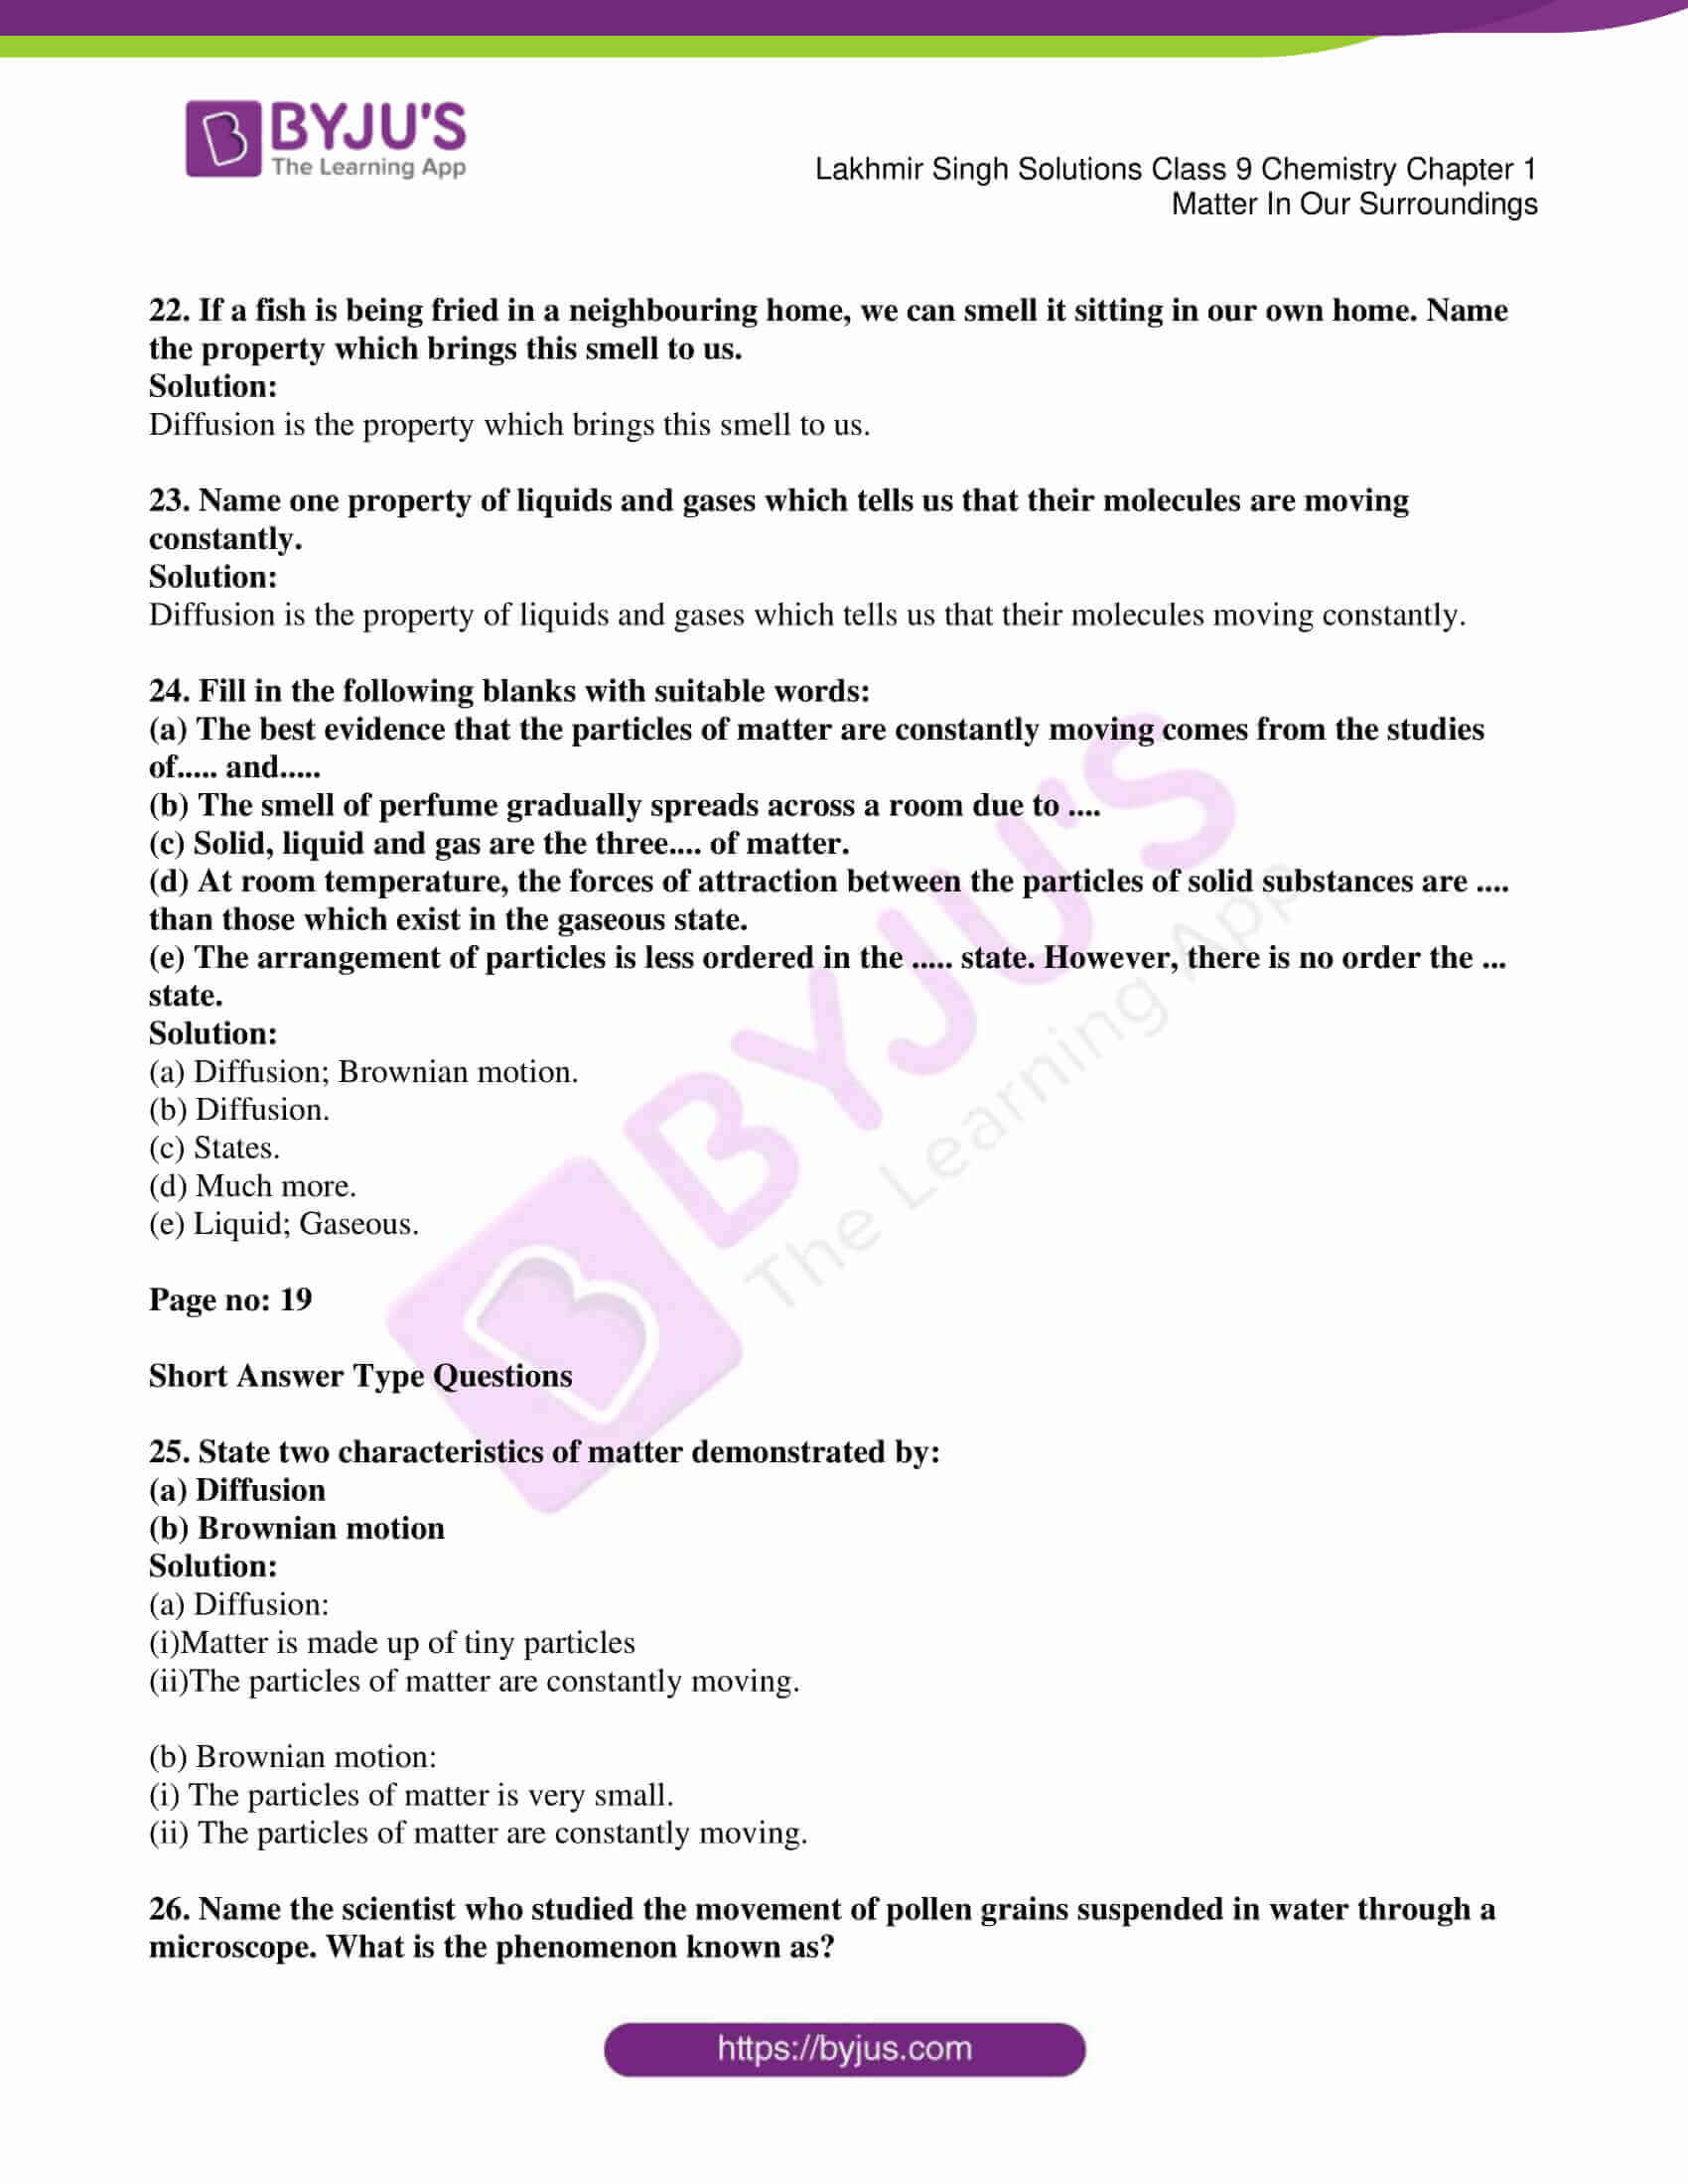 lakhmir singh solutions class 9 chemistry chapter 1 04